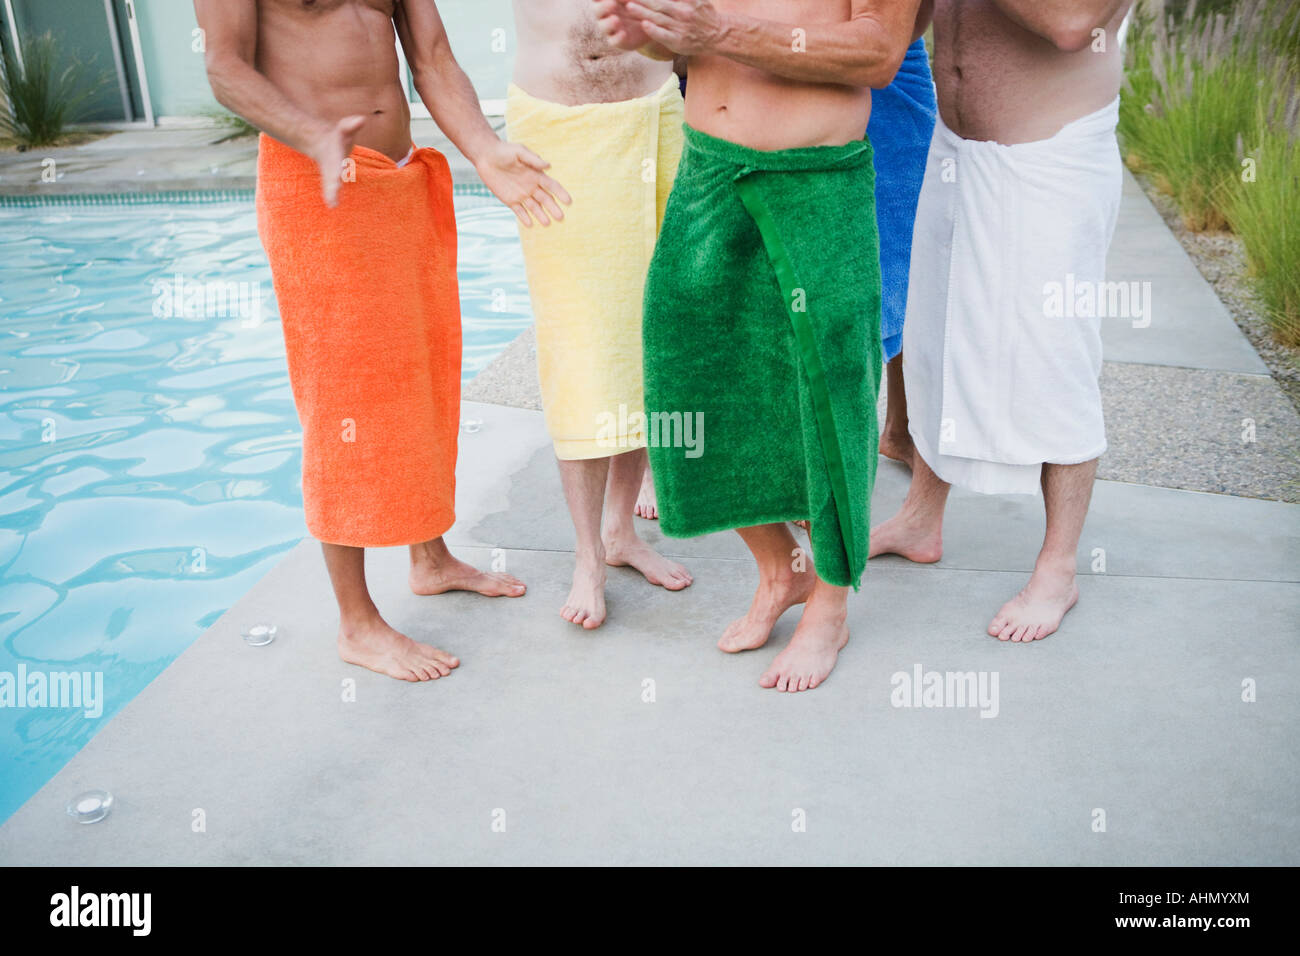 Men in towels by swimming pool Stock Photo: 14510251 - Alamy